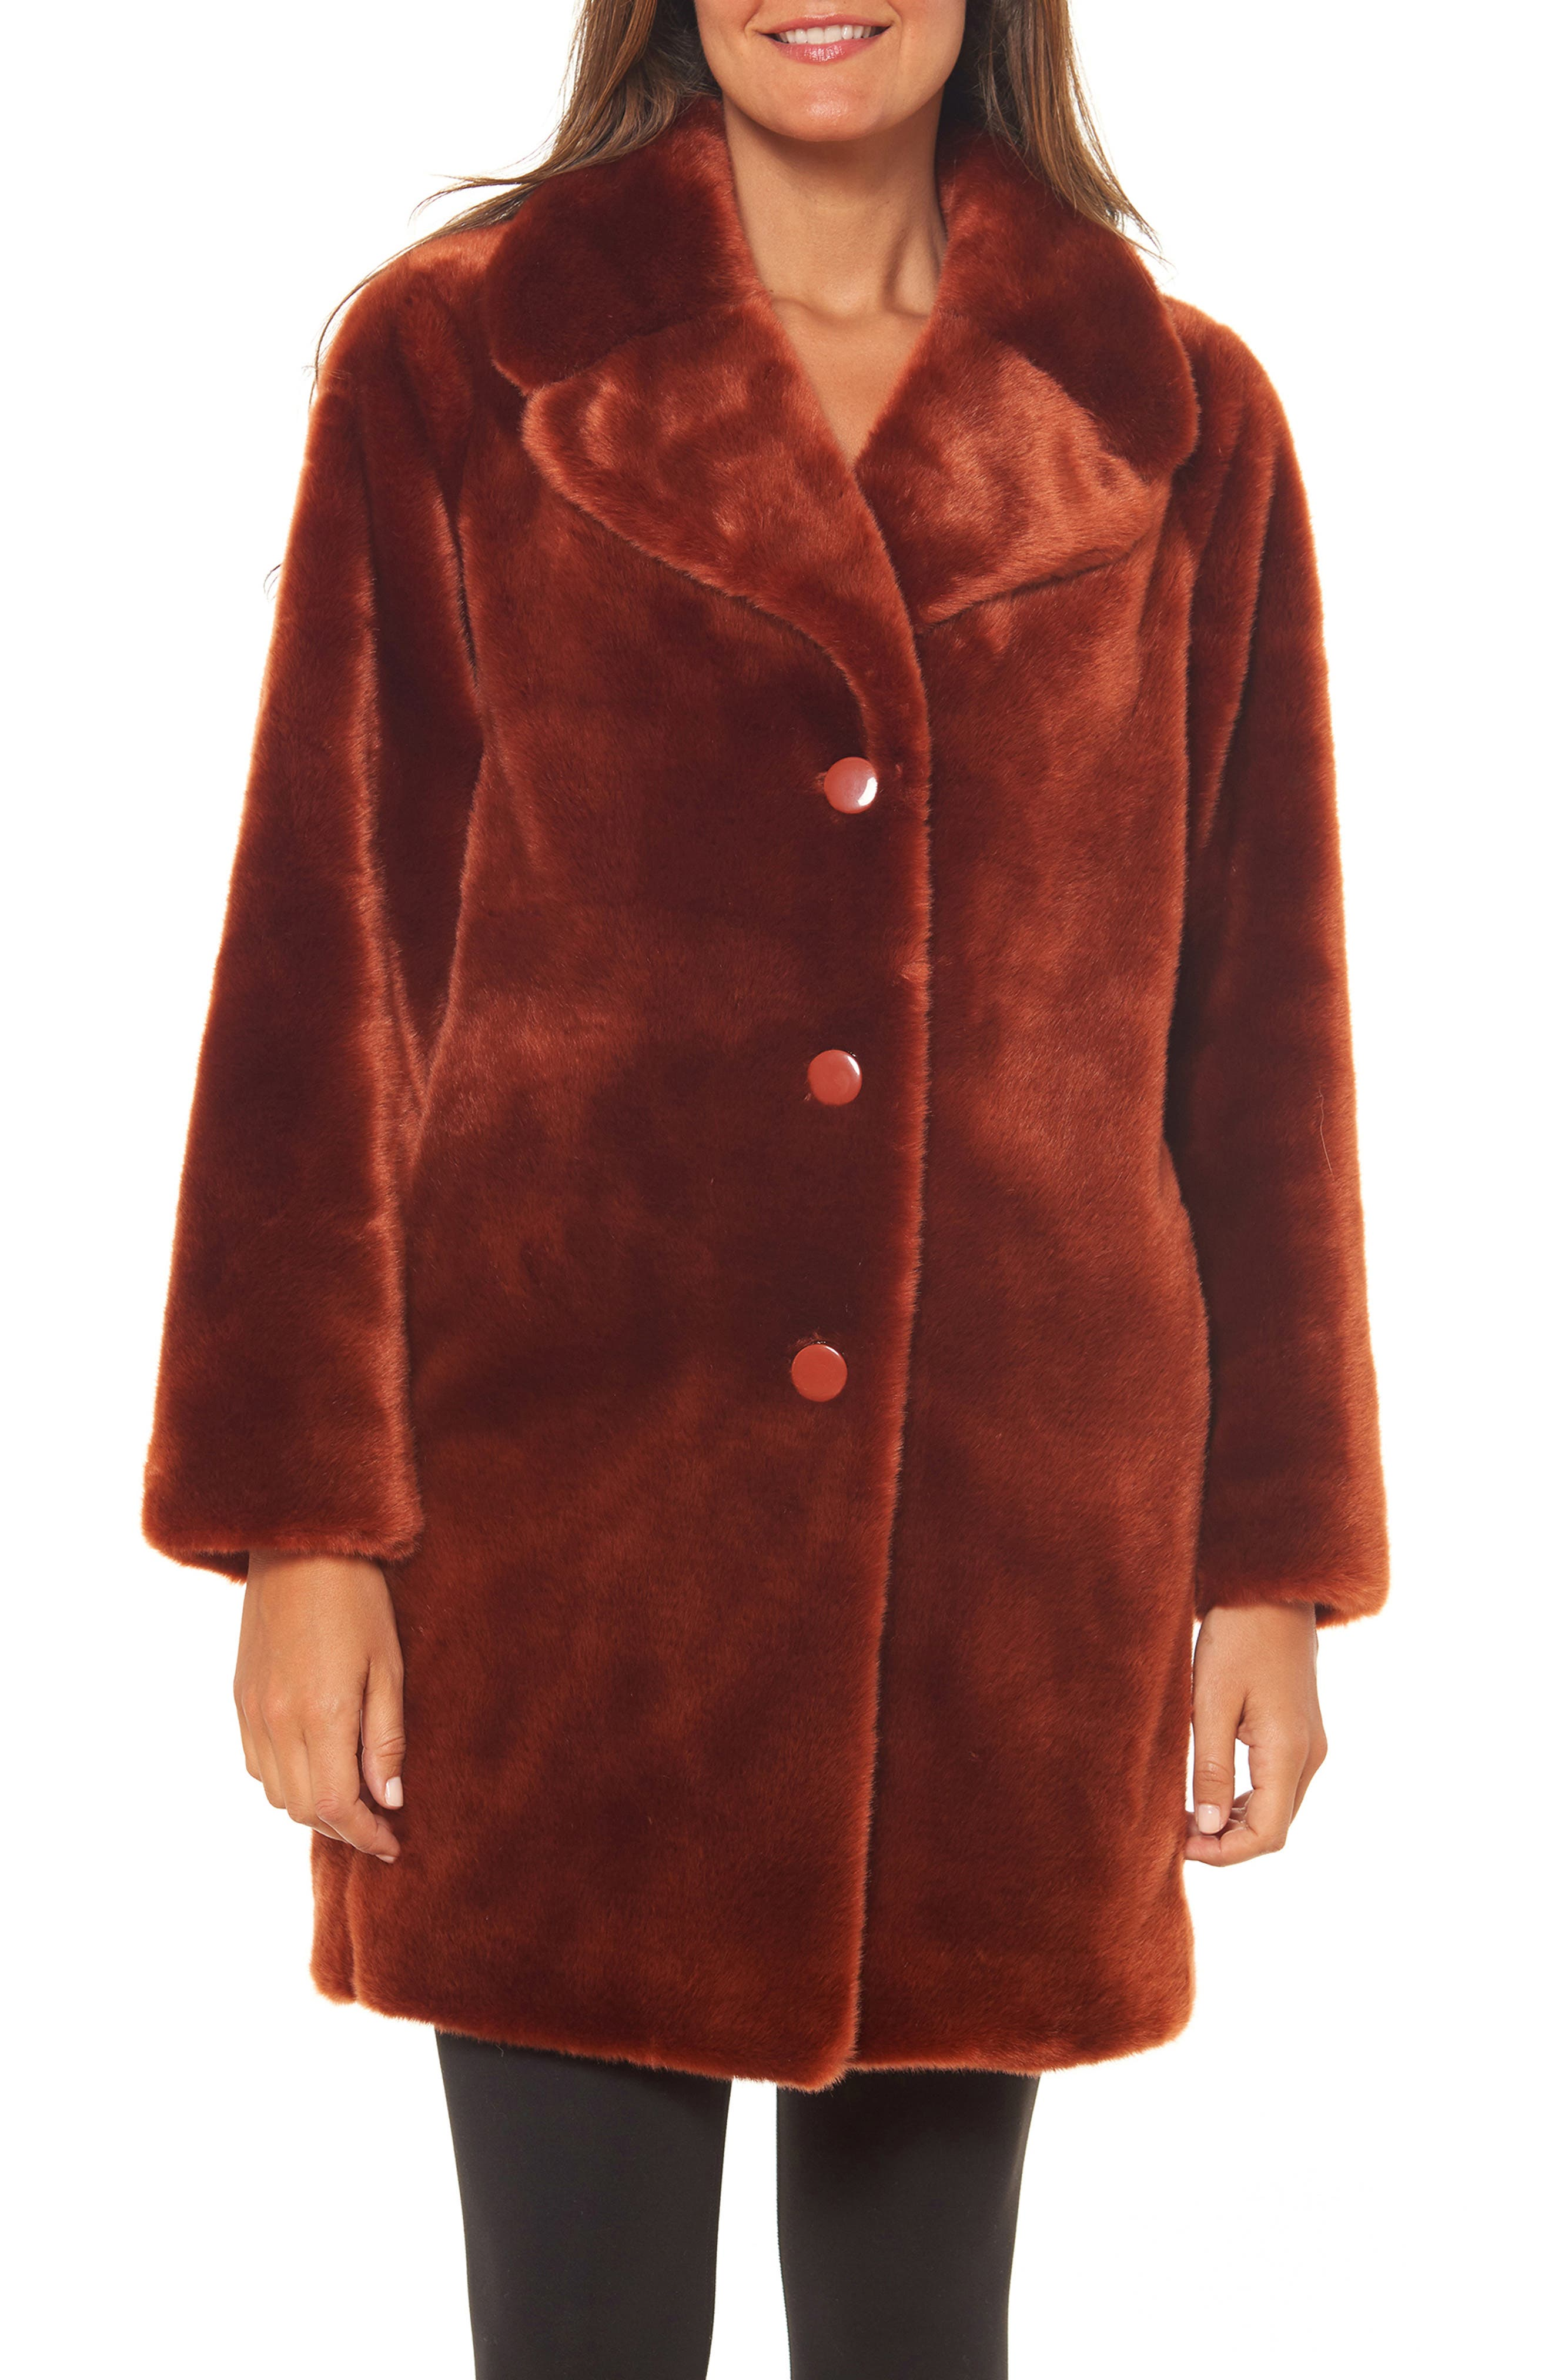 70s Outfits – 70s Style Ideas for Women Womens Kate Spade New York Faux Fur Coat Size Small - Brown $239.90 AT vintagedancer.com